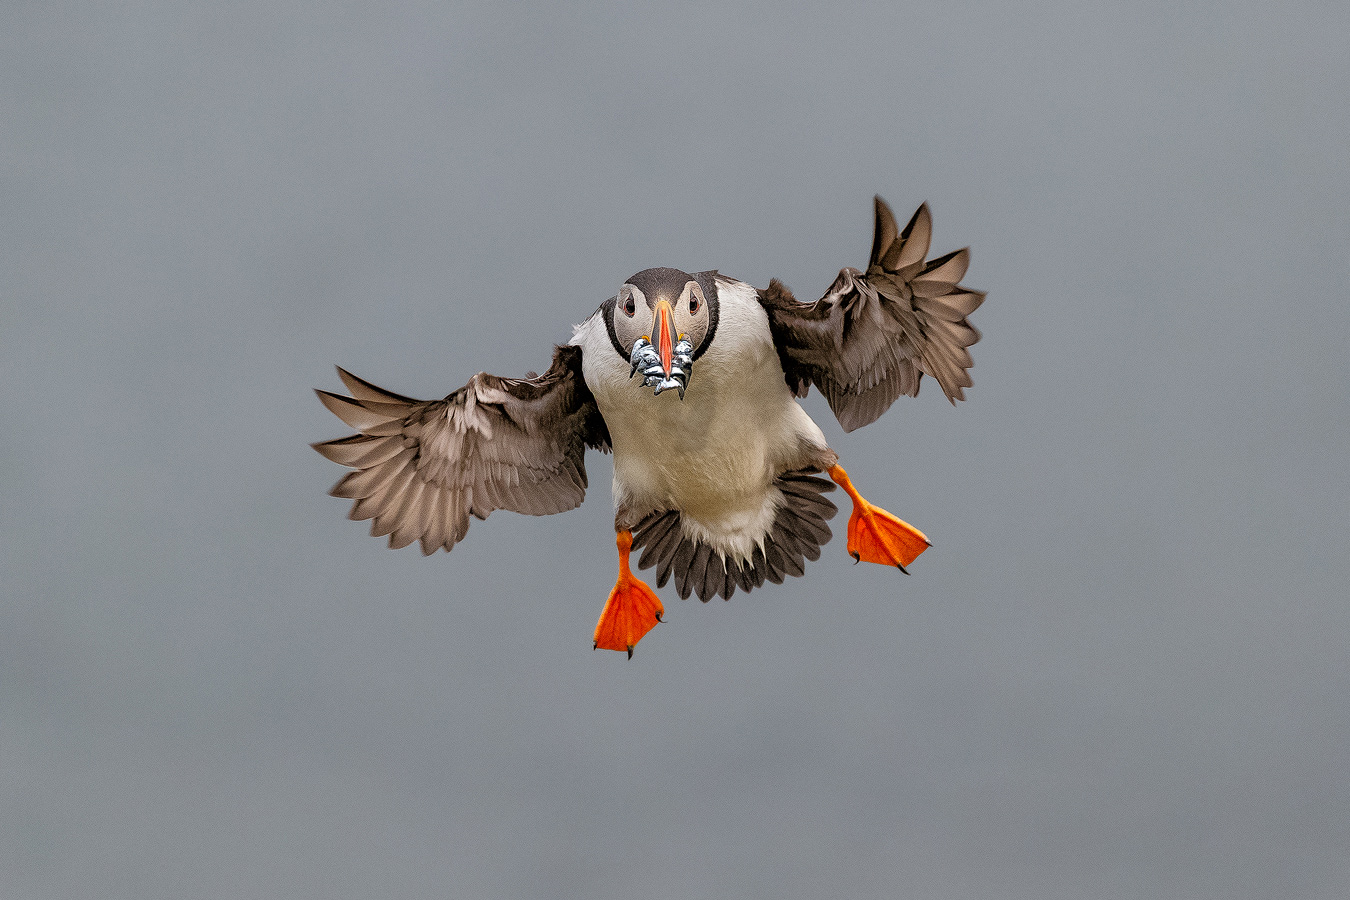 flight_andy_trowbridge_puffin_scotland_7611_0